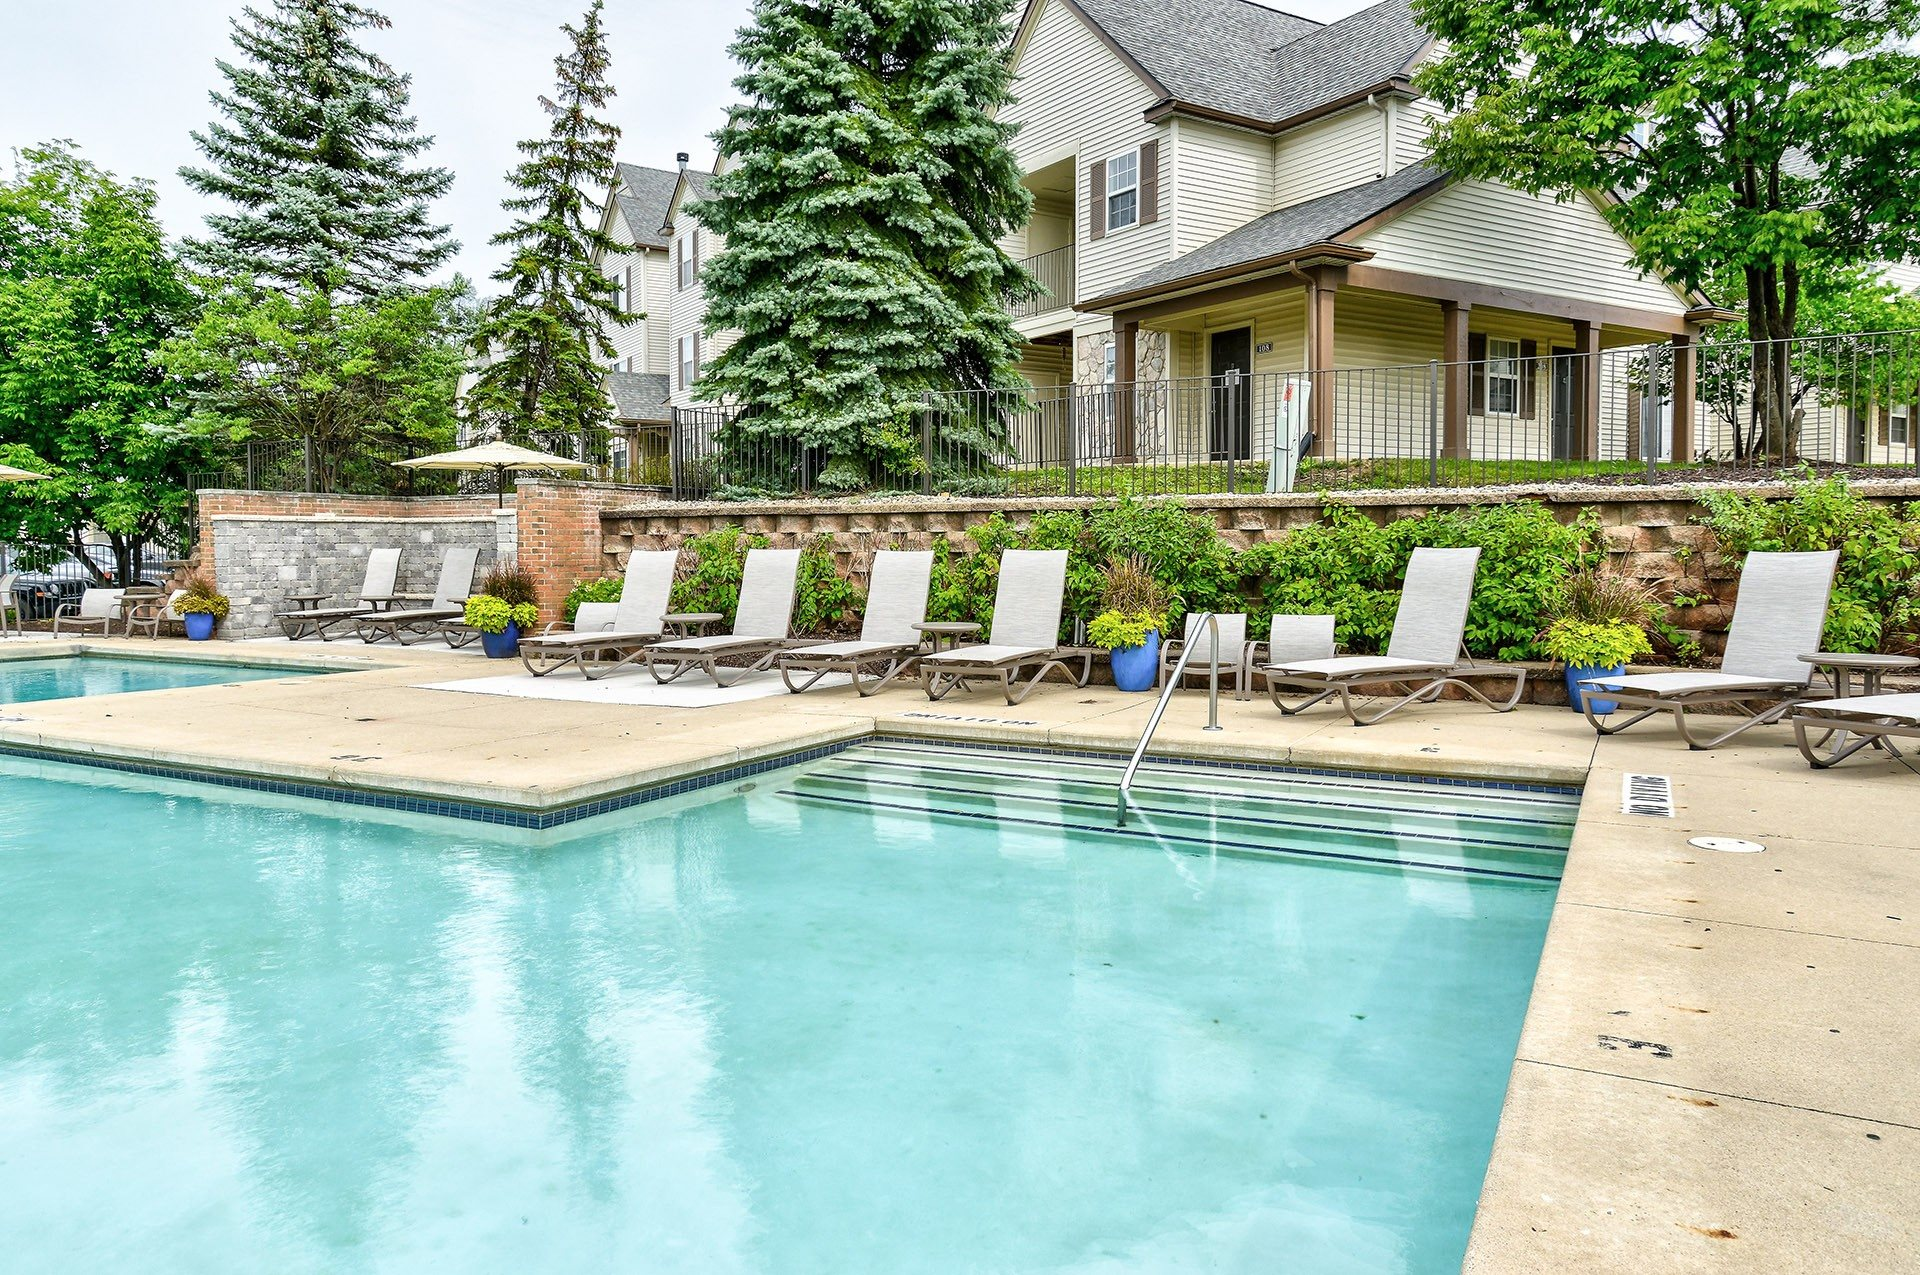 Photos and Video of The Villas at Main Street in Ann Arbor, MI